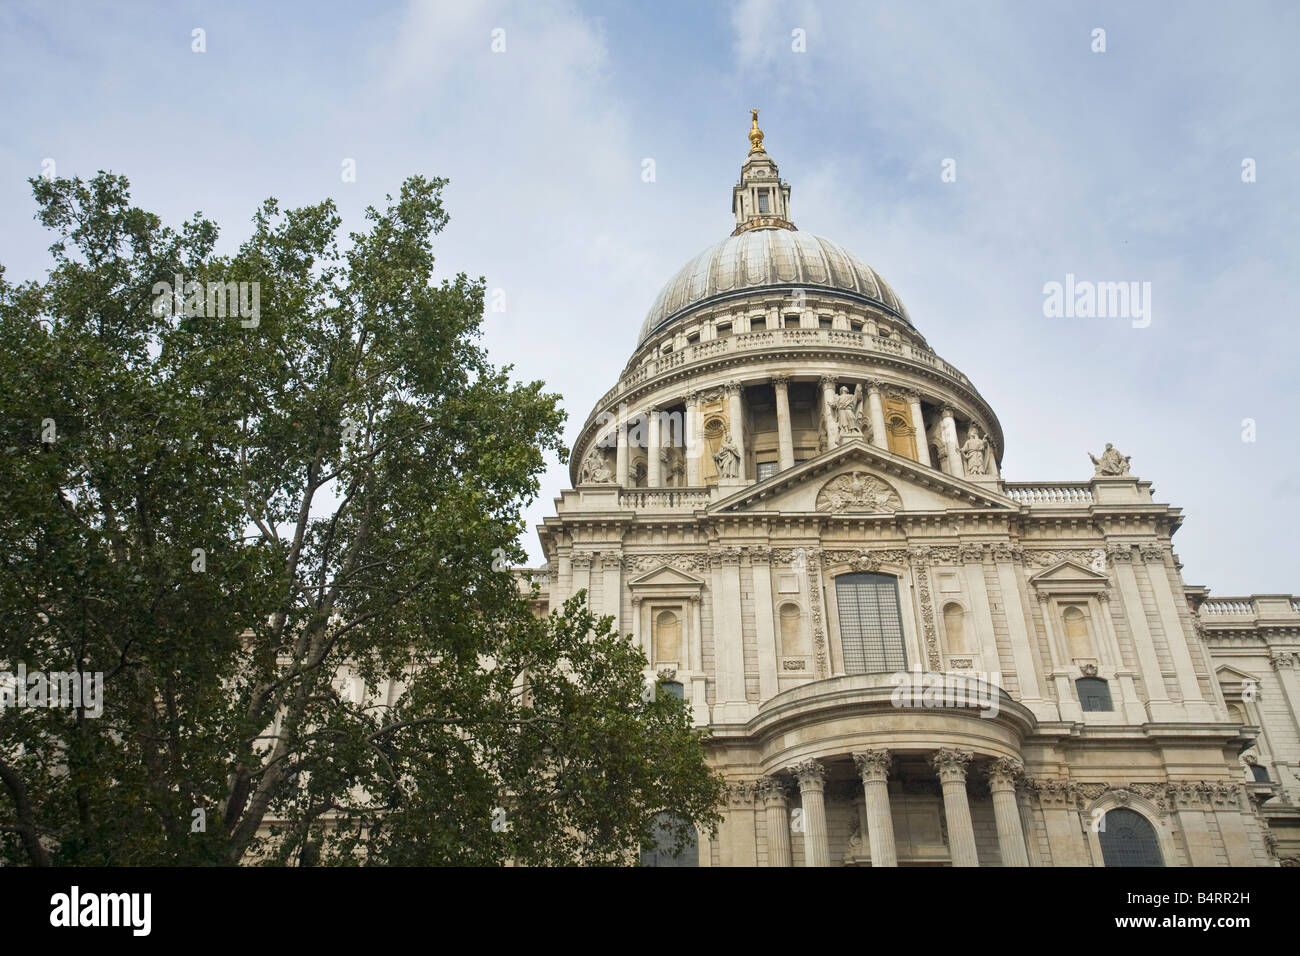 St Pauls Cathedral exterior and dome London England UK United Kingdom GB Great Britain British Isles Europe EU - Stock Image